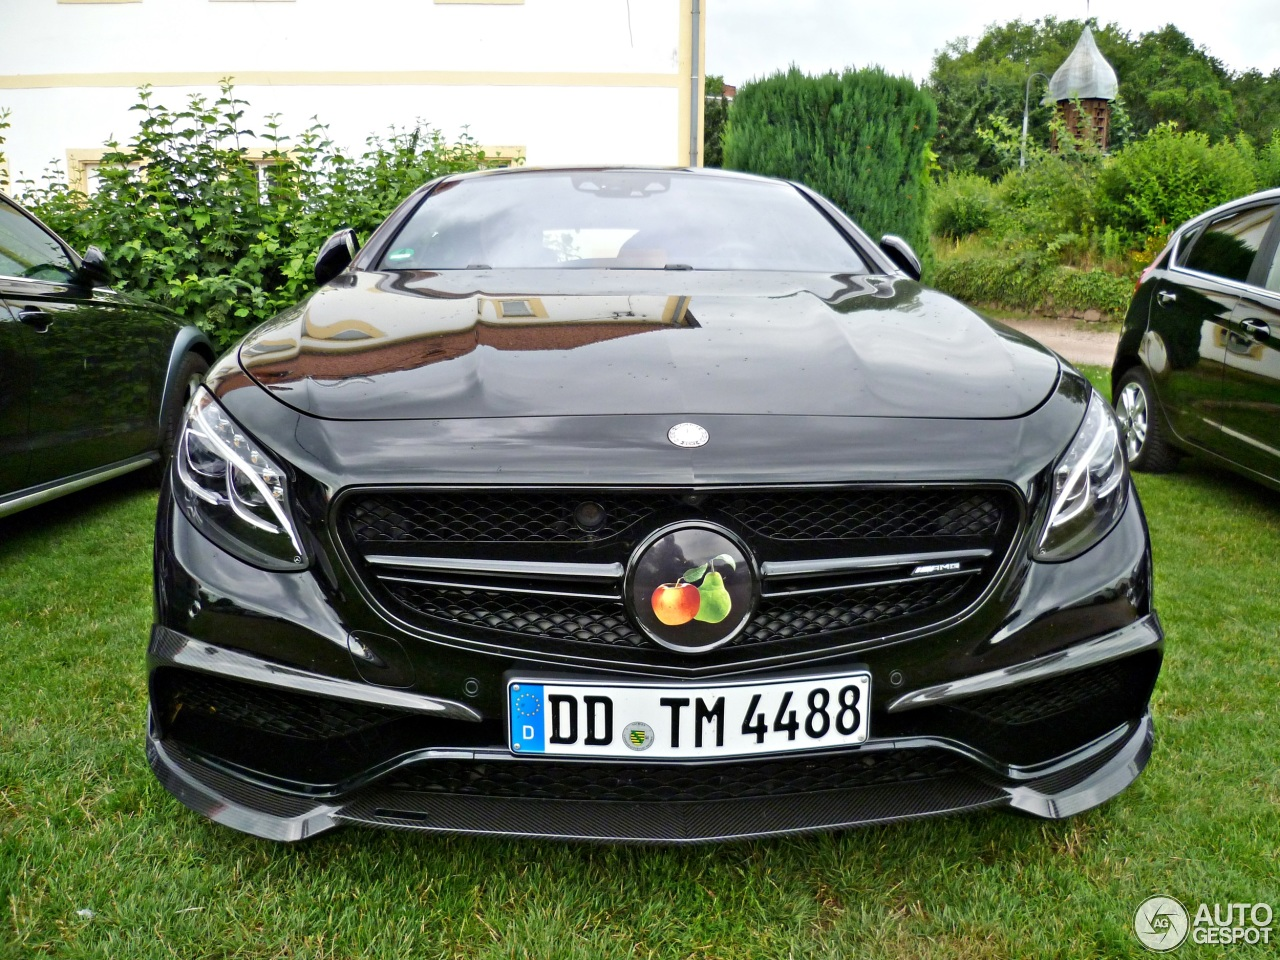 Mercedes benz brabus s b63 650 coupe c217 29 july 2016 for Mercedes benz 650